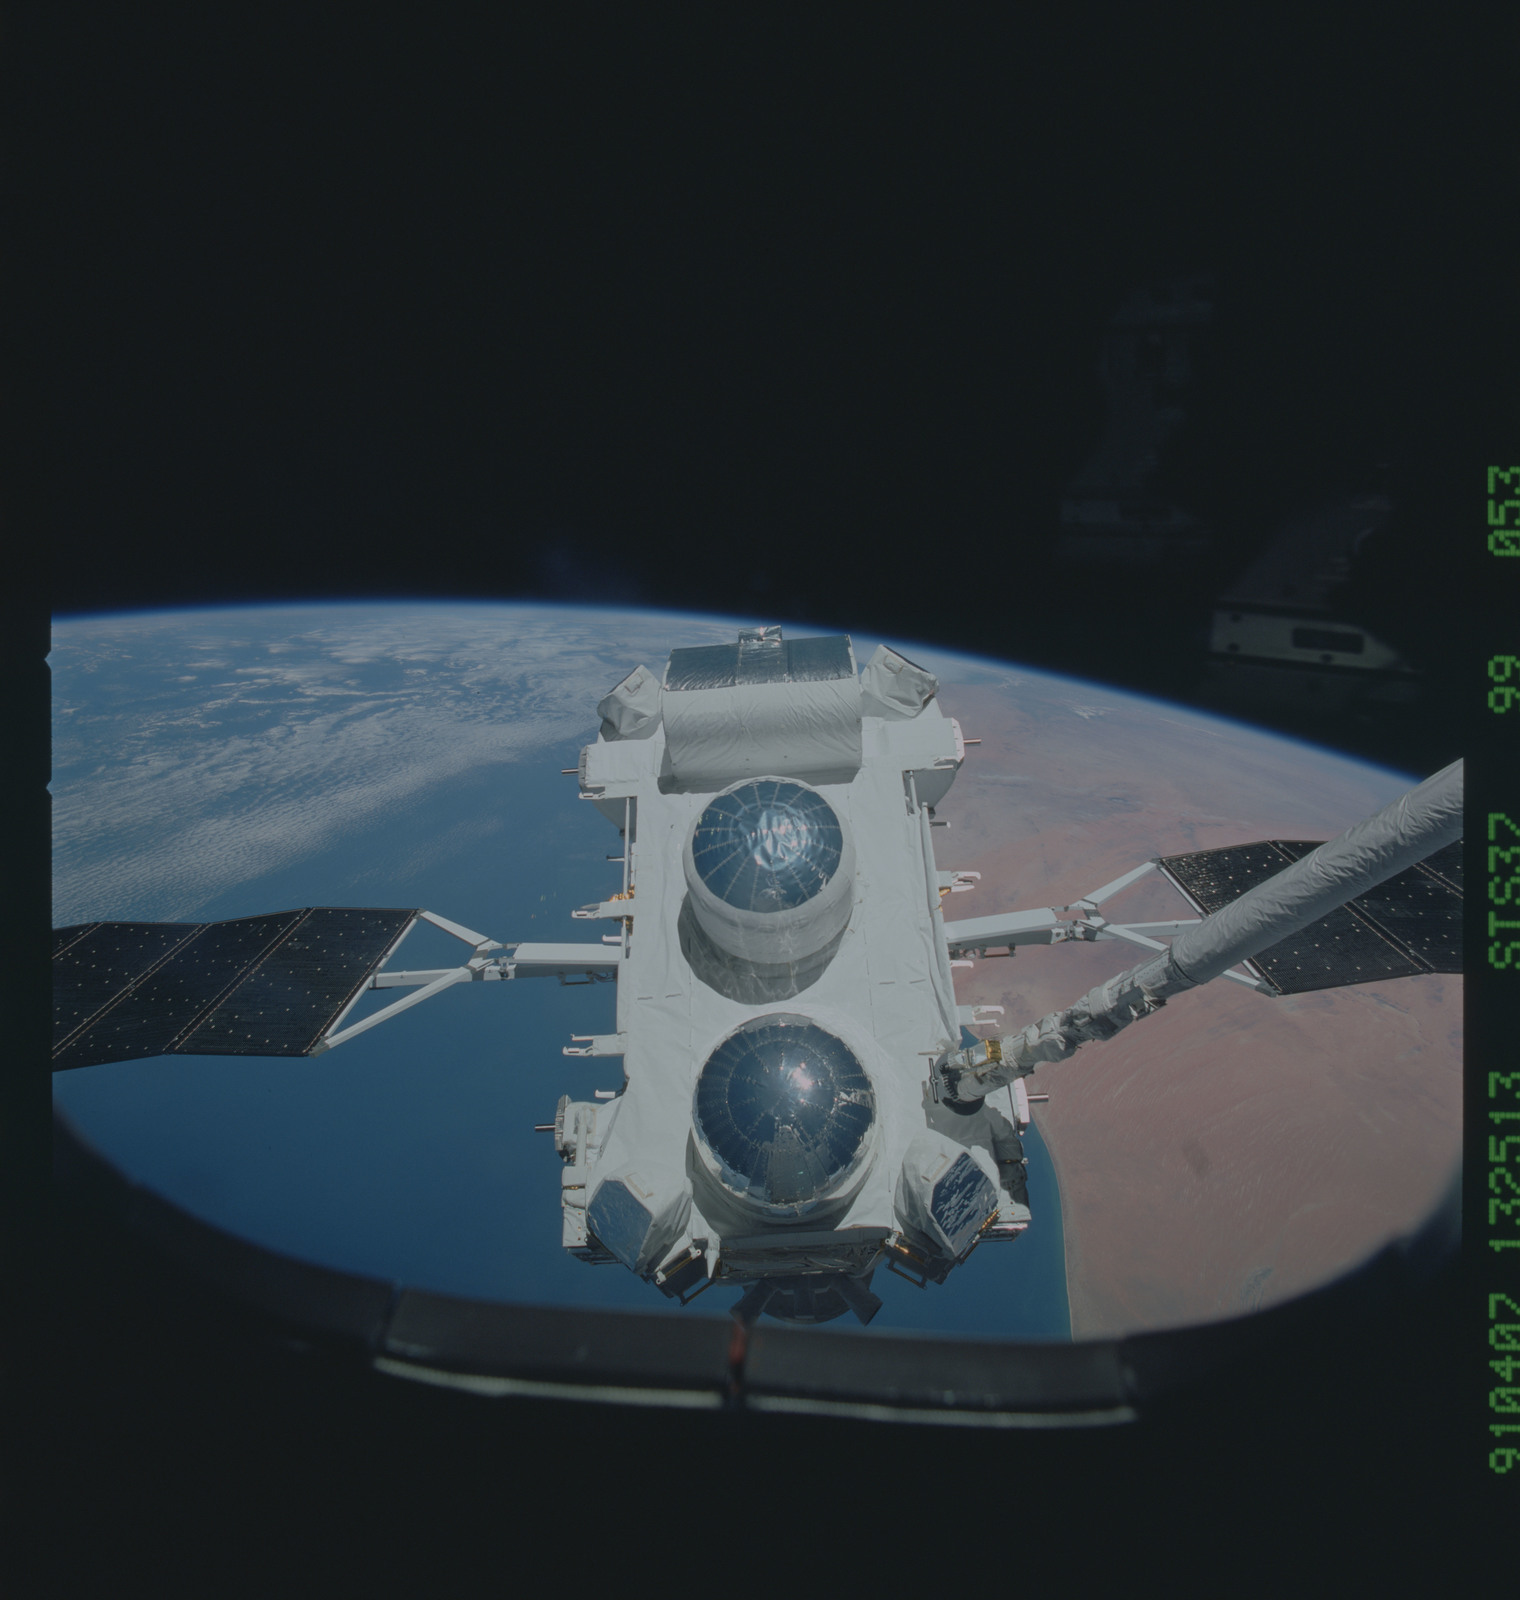 S37-99-053 - STS-037 - The Gamma Ray Observatory (GRO) grappled by the RMS during STS-37 deployment